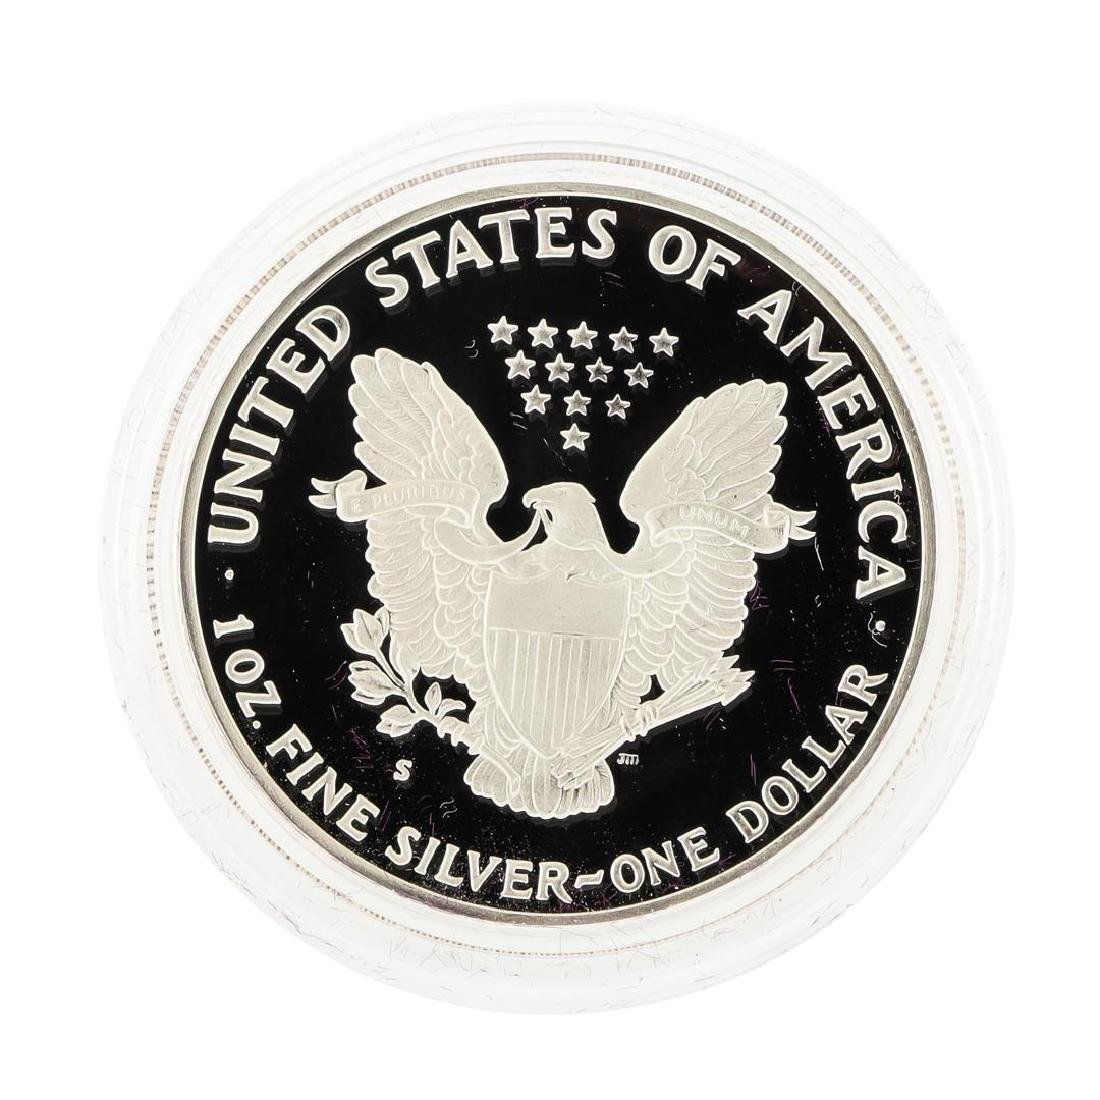 1986 1oz American Silver Eagle Proof Coin with Box - 2